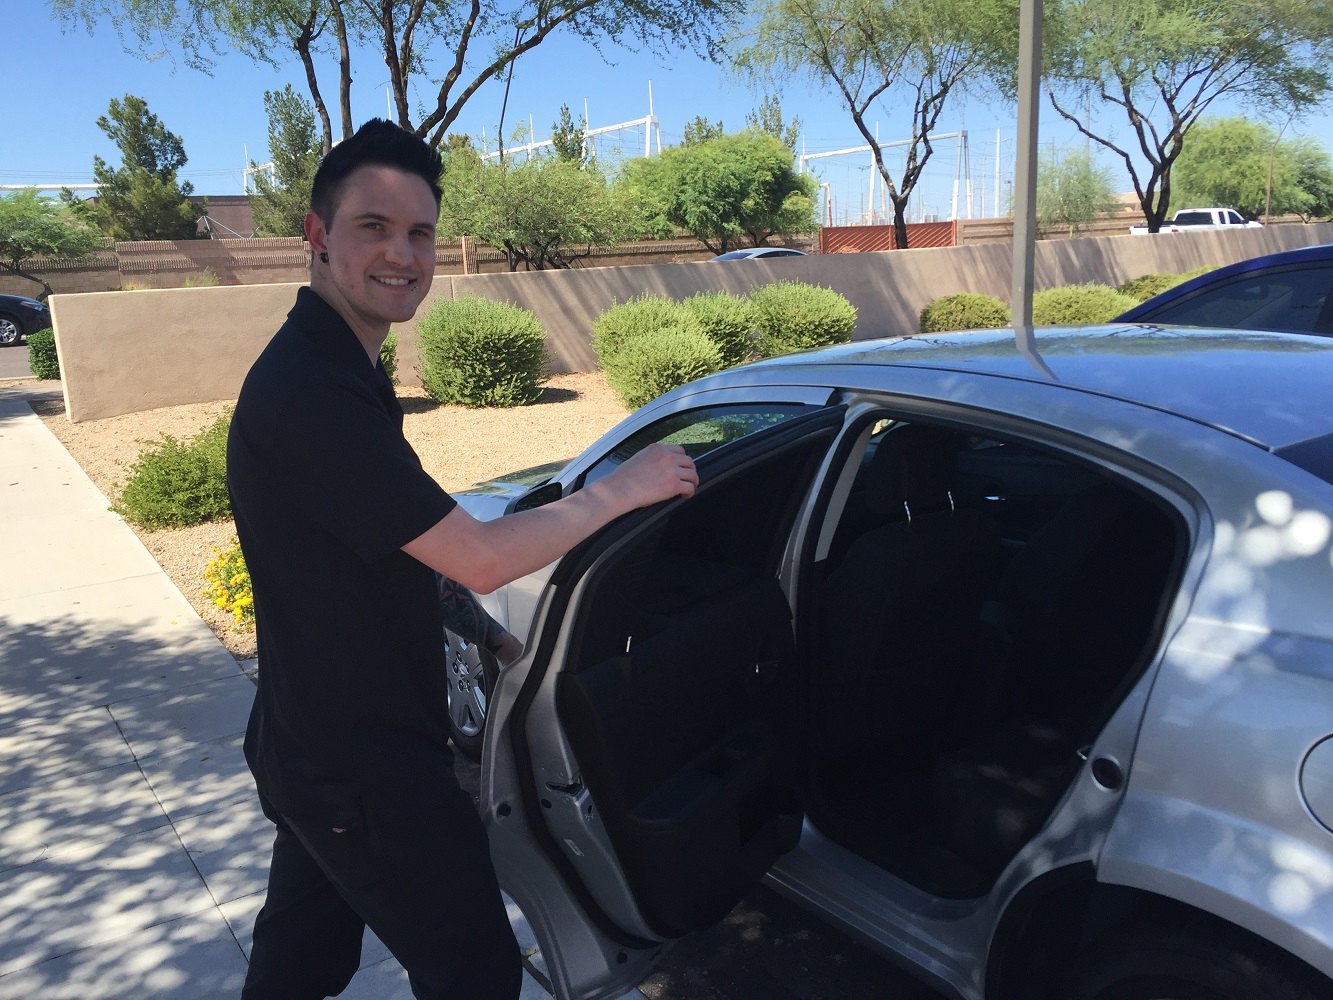 Dan Davis says he opened the door to a potential money-making enterprise during his two week stint as a driver for the ride-sharing company Lyft.  (Wrangler News photo)